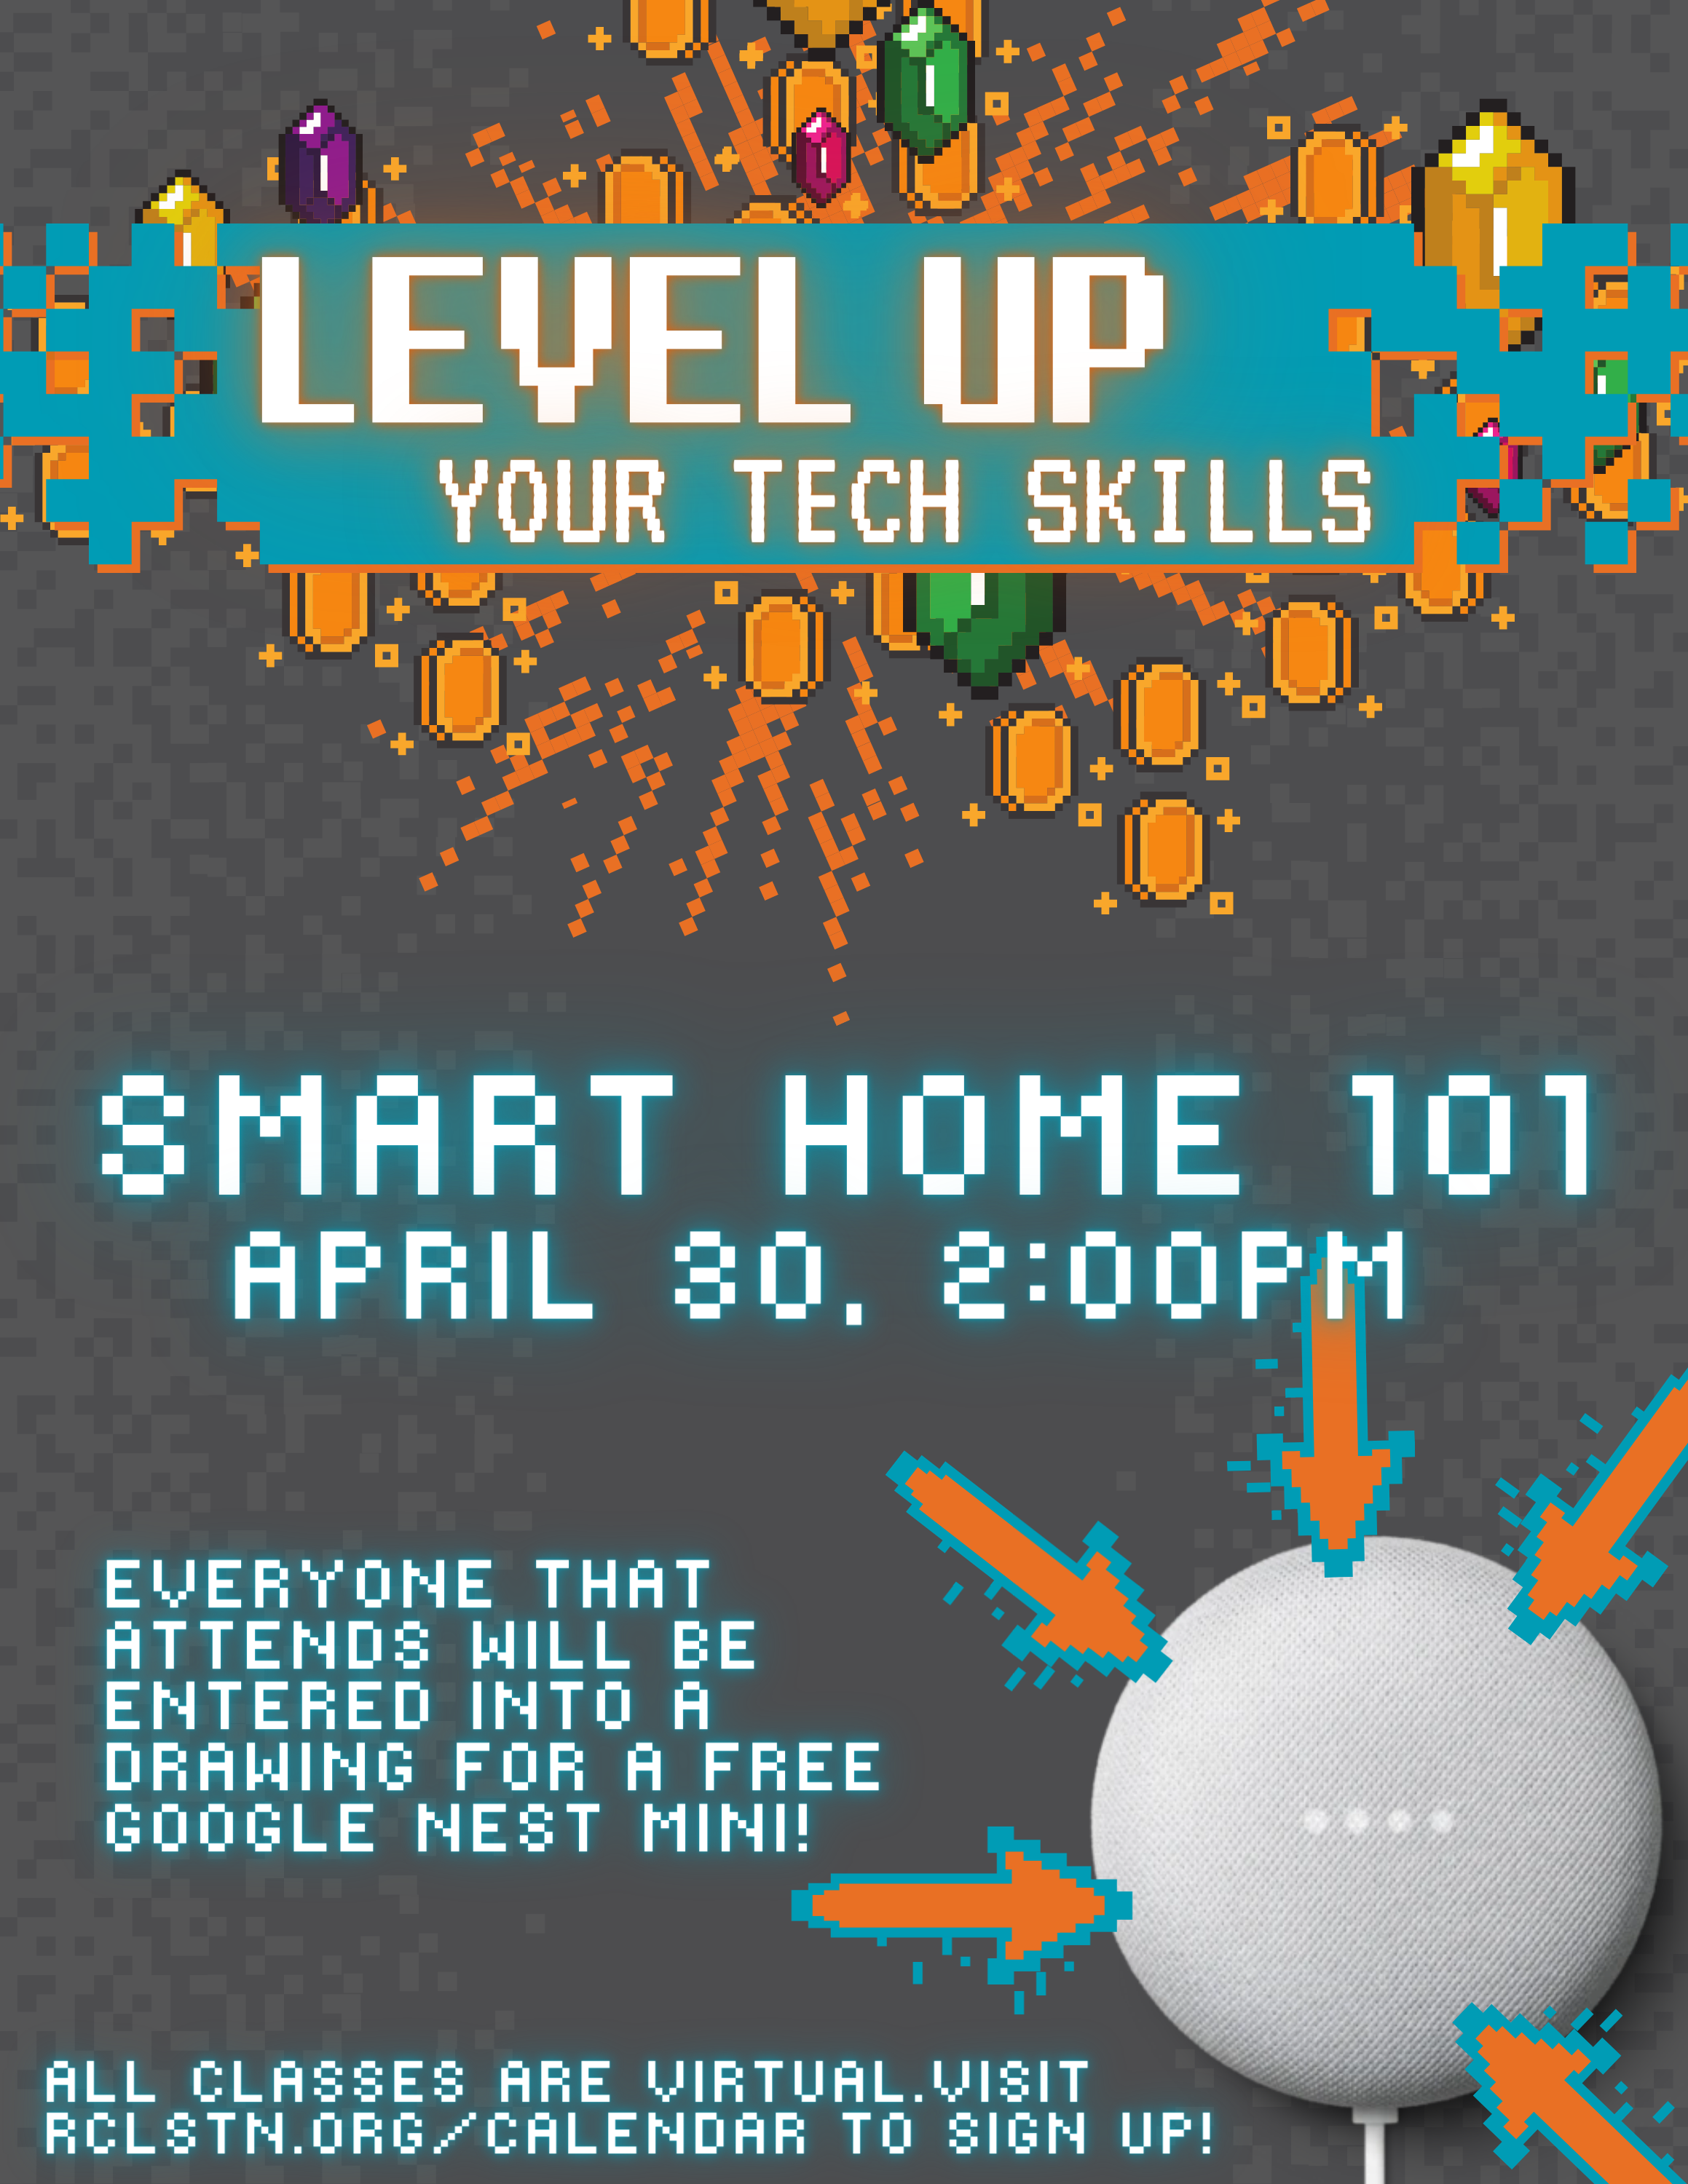 Level Up! Smart Home 101 with Google Nest Mini Drawing!